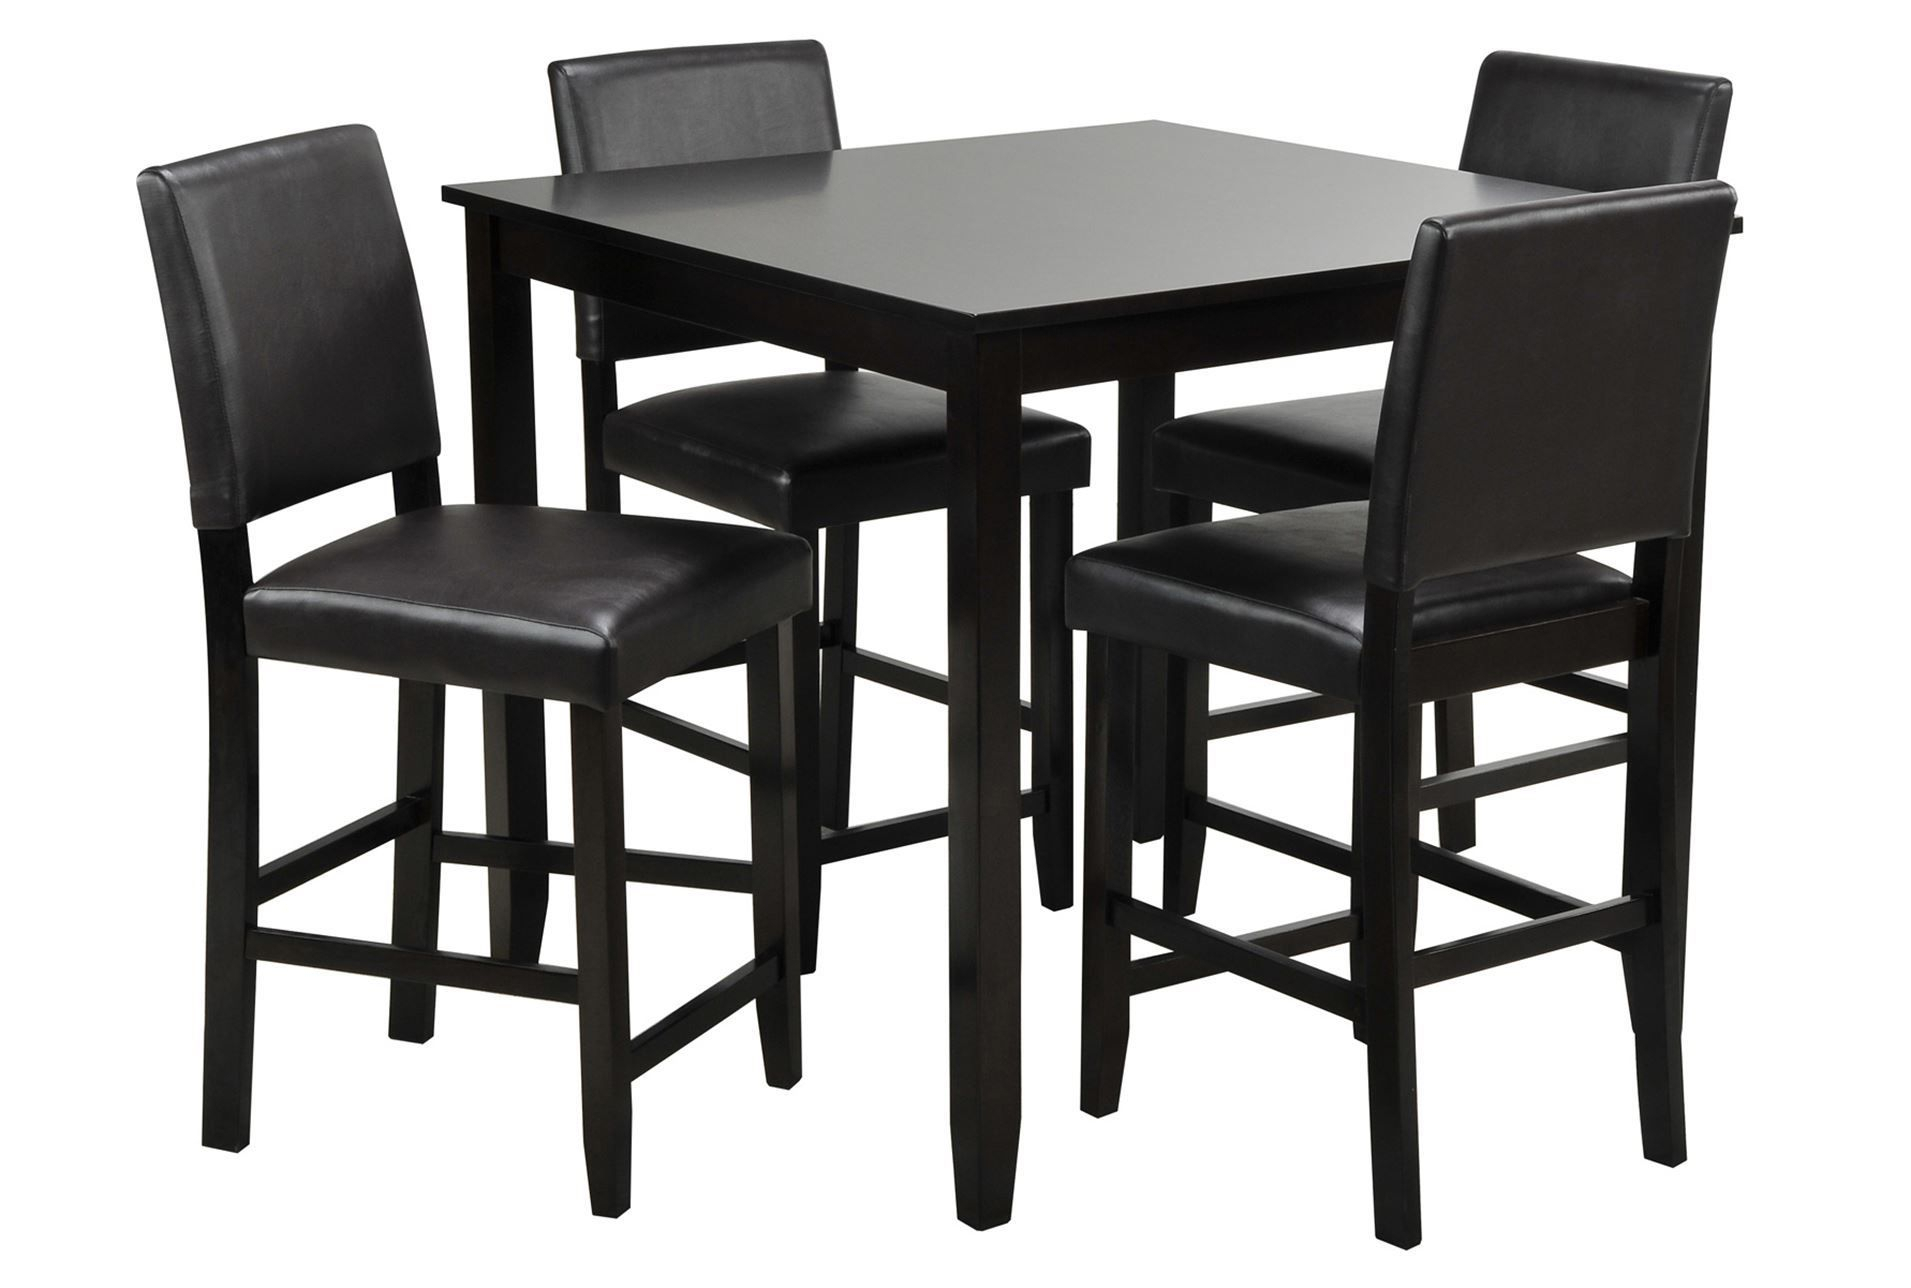 Jarrod 5 Piece Counter Set | Home – | Counter, Home Decor, Furniture Within Most Up To Date Jarrod 5 Piece Dining Sets (Image 5 of 20)